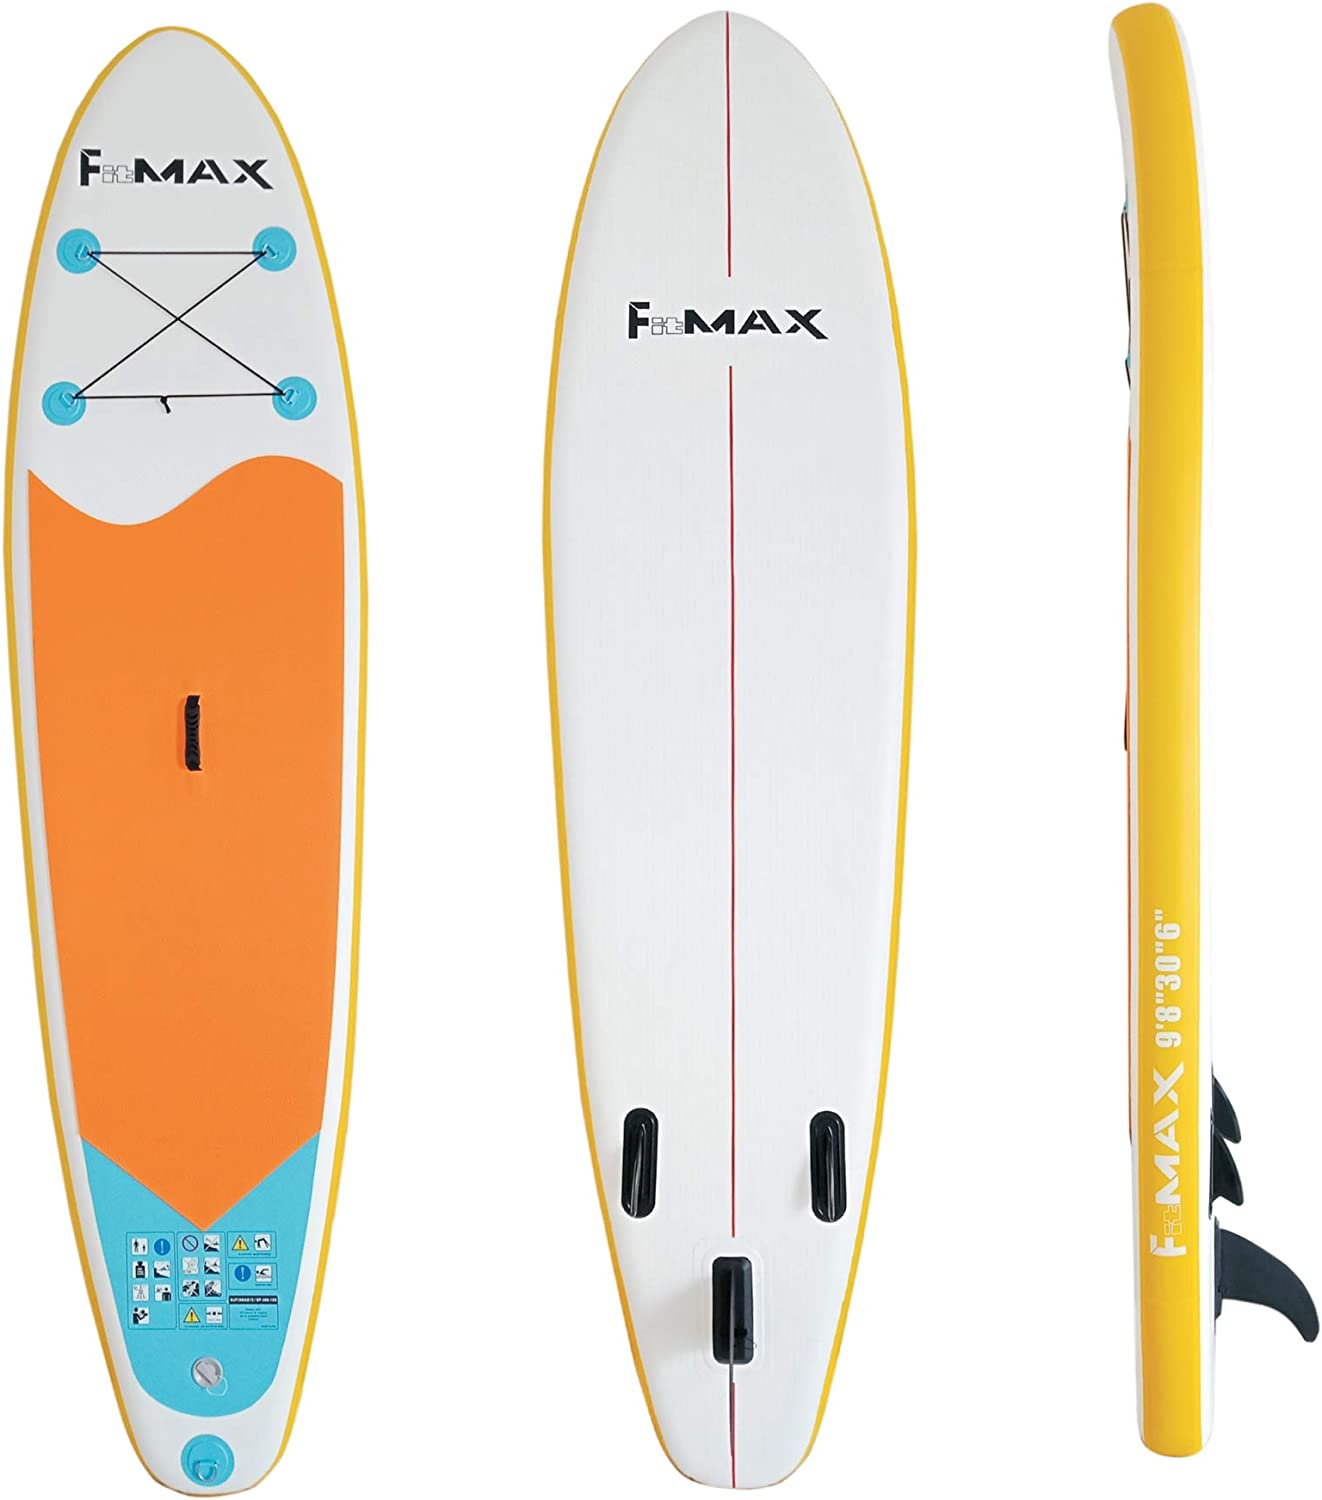 Fitmax Cloudsurfer 9 6 Inflatable Stand Up Paddle Board Extra Wide Design With Triple Bottom Fins